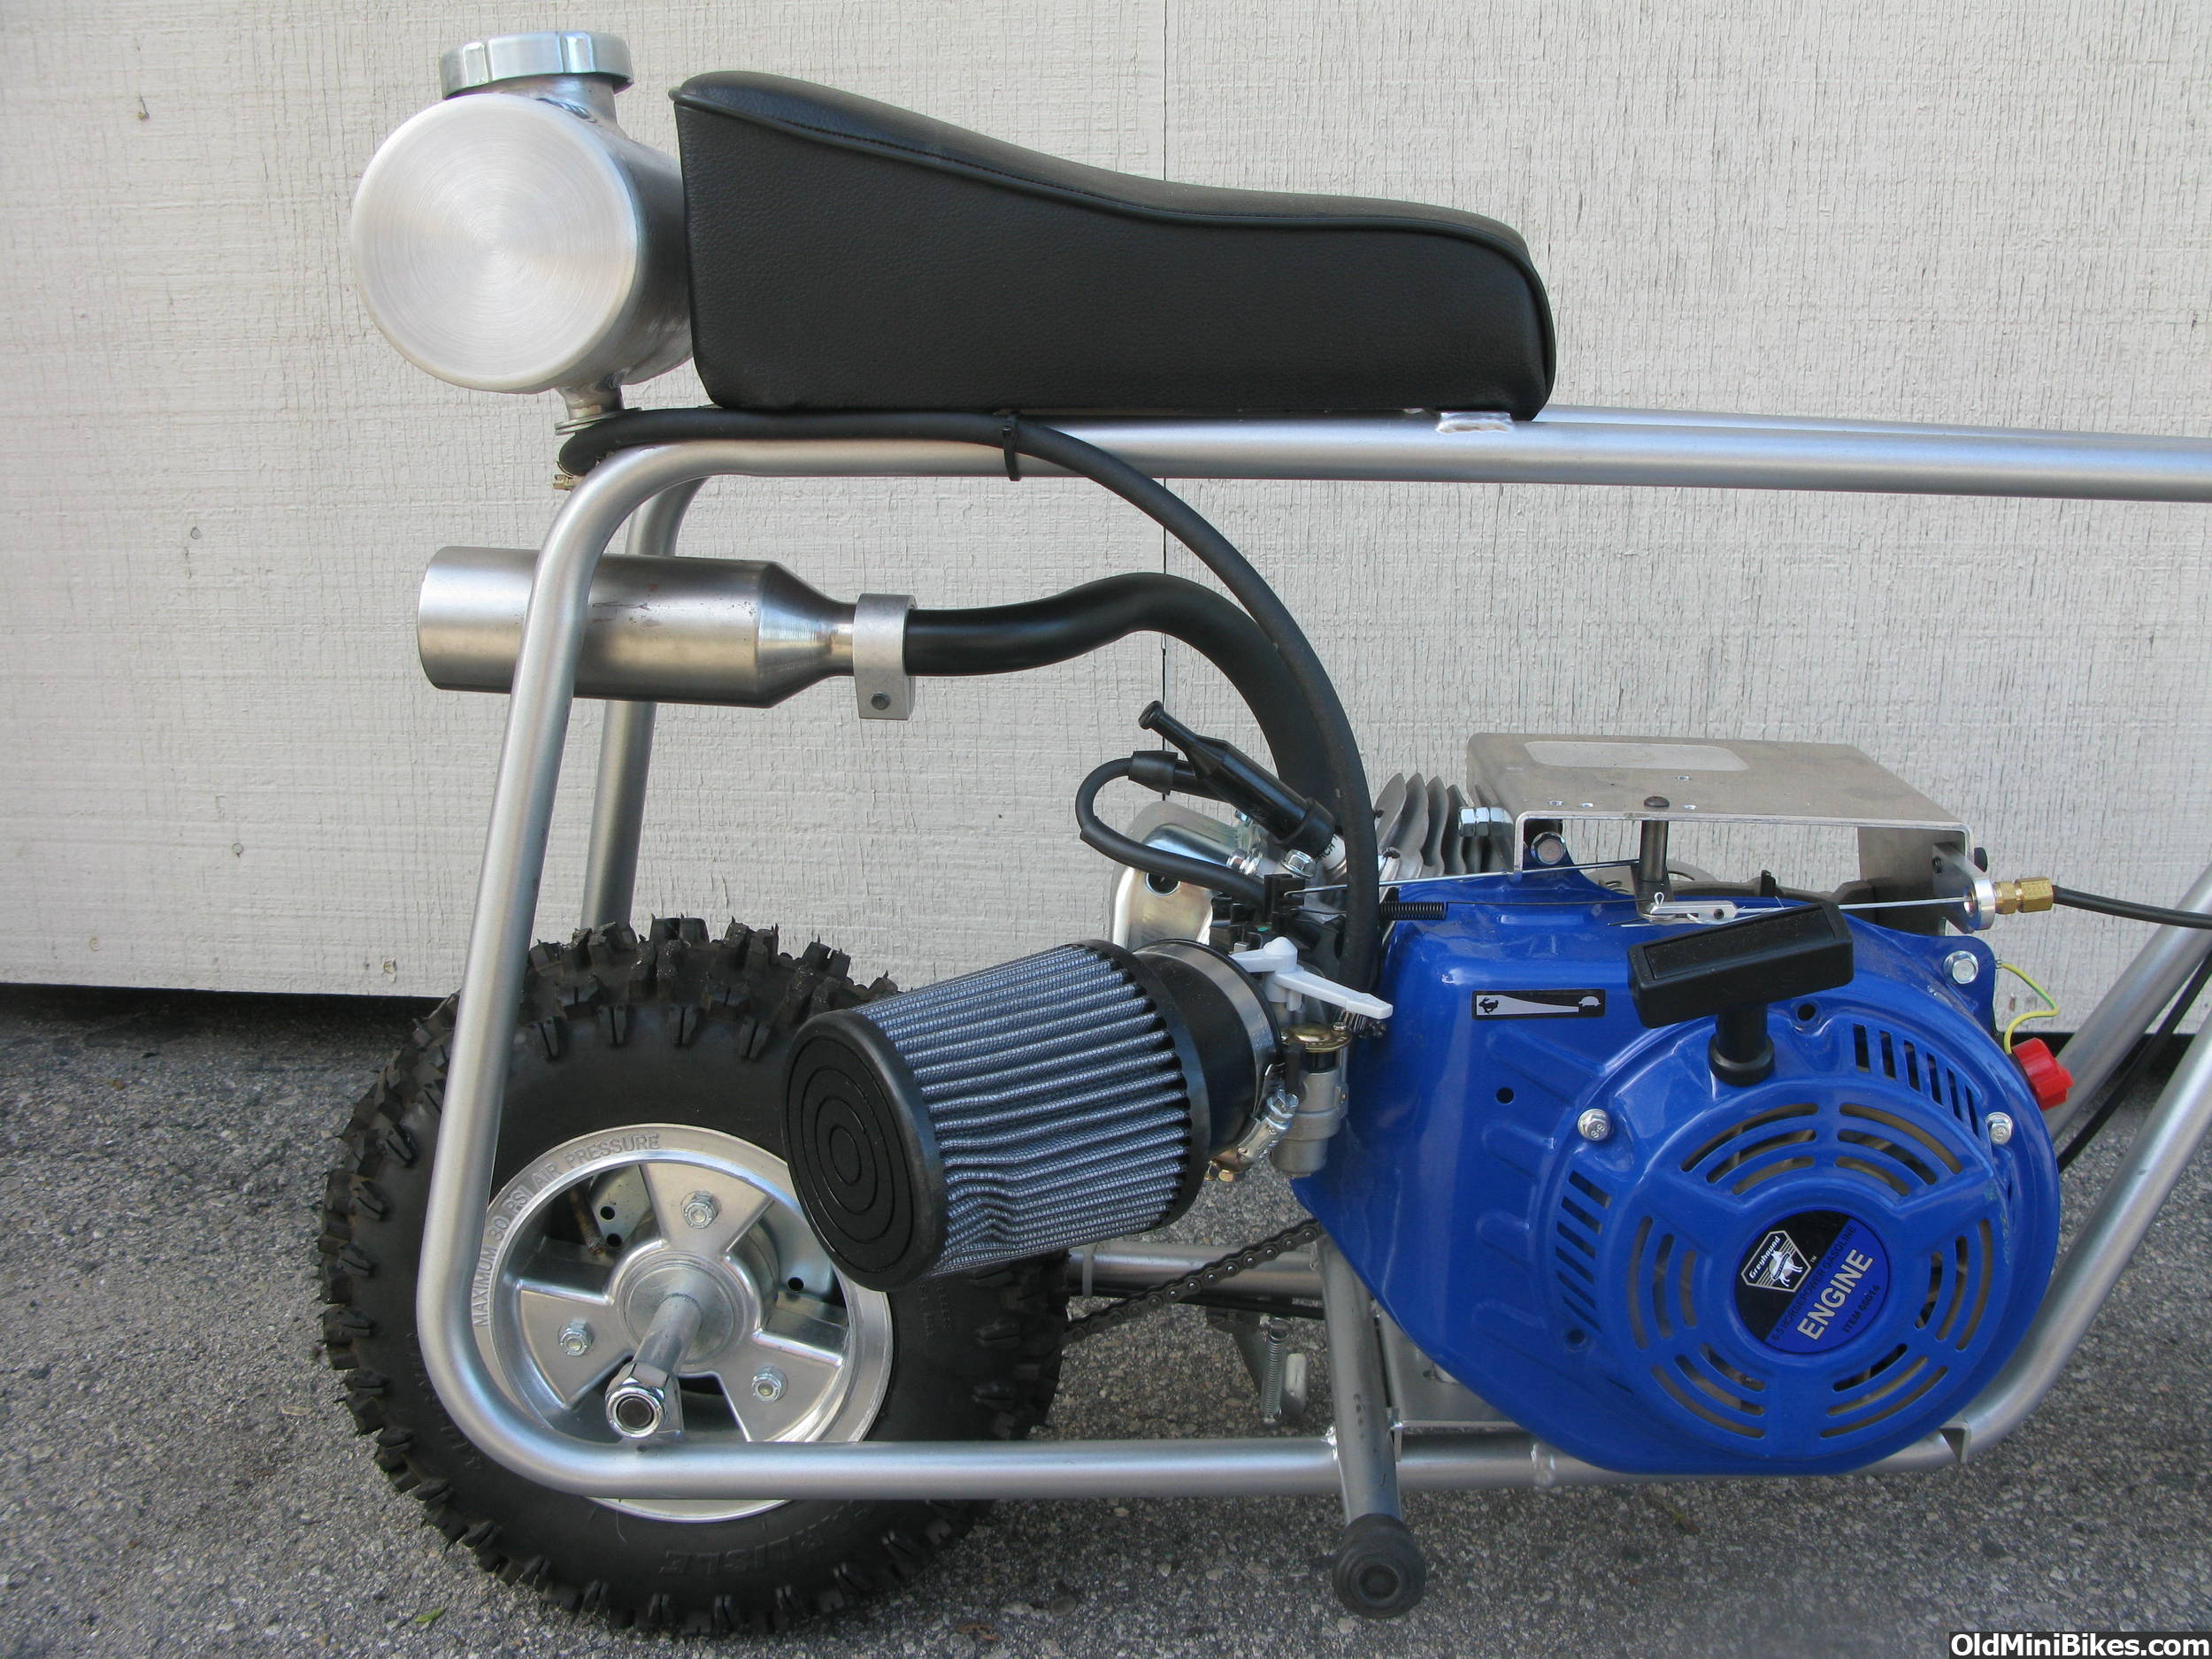 Brand new one of a kind 6 5 hp custom mini bike less than a hour on engine custom intake exhaust and gas tank retro 60s style